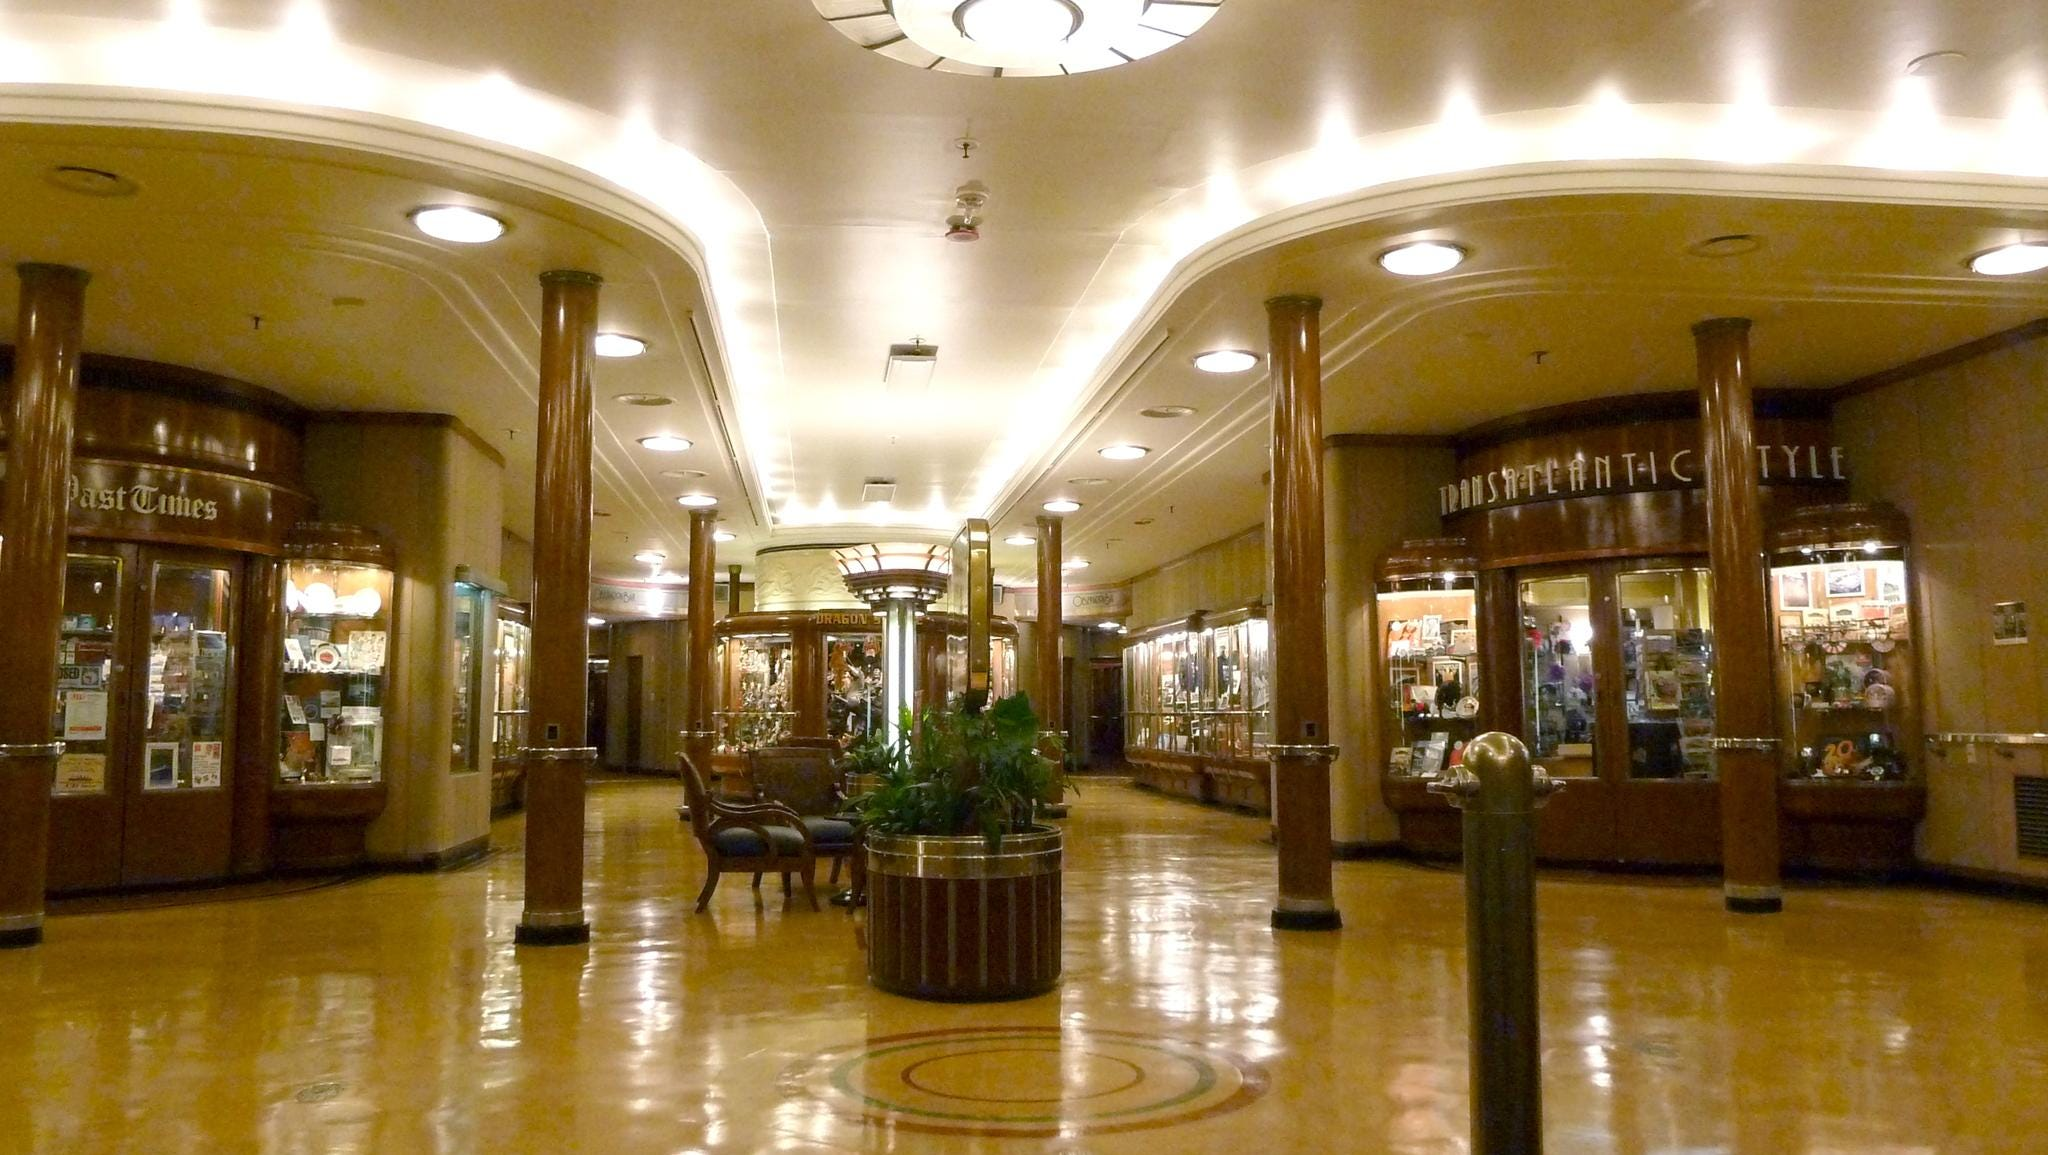 The Main Hall was the Queen Mary's first-class foyer and shopping arcade and features paneling in oaknut, chestnut and elm burr.